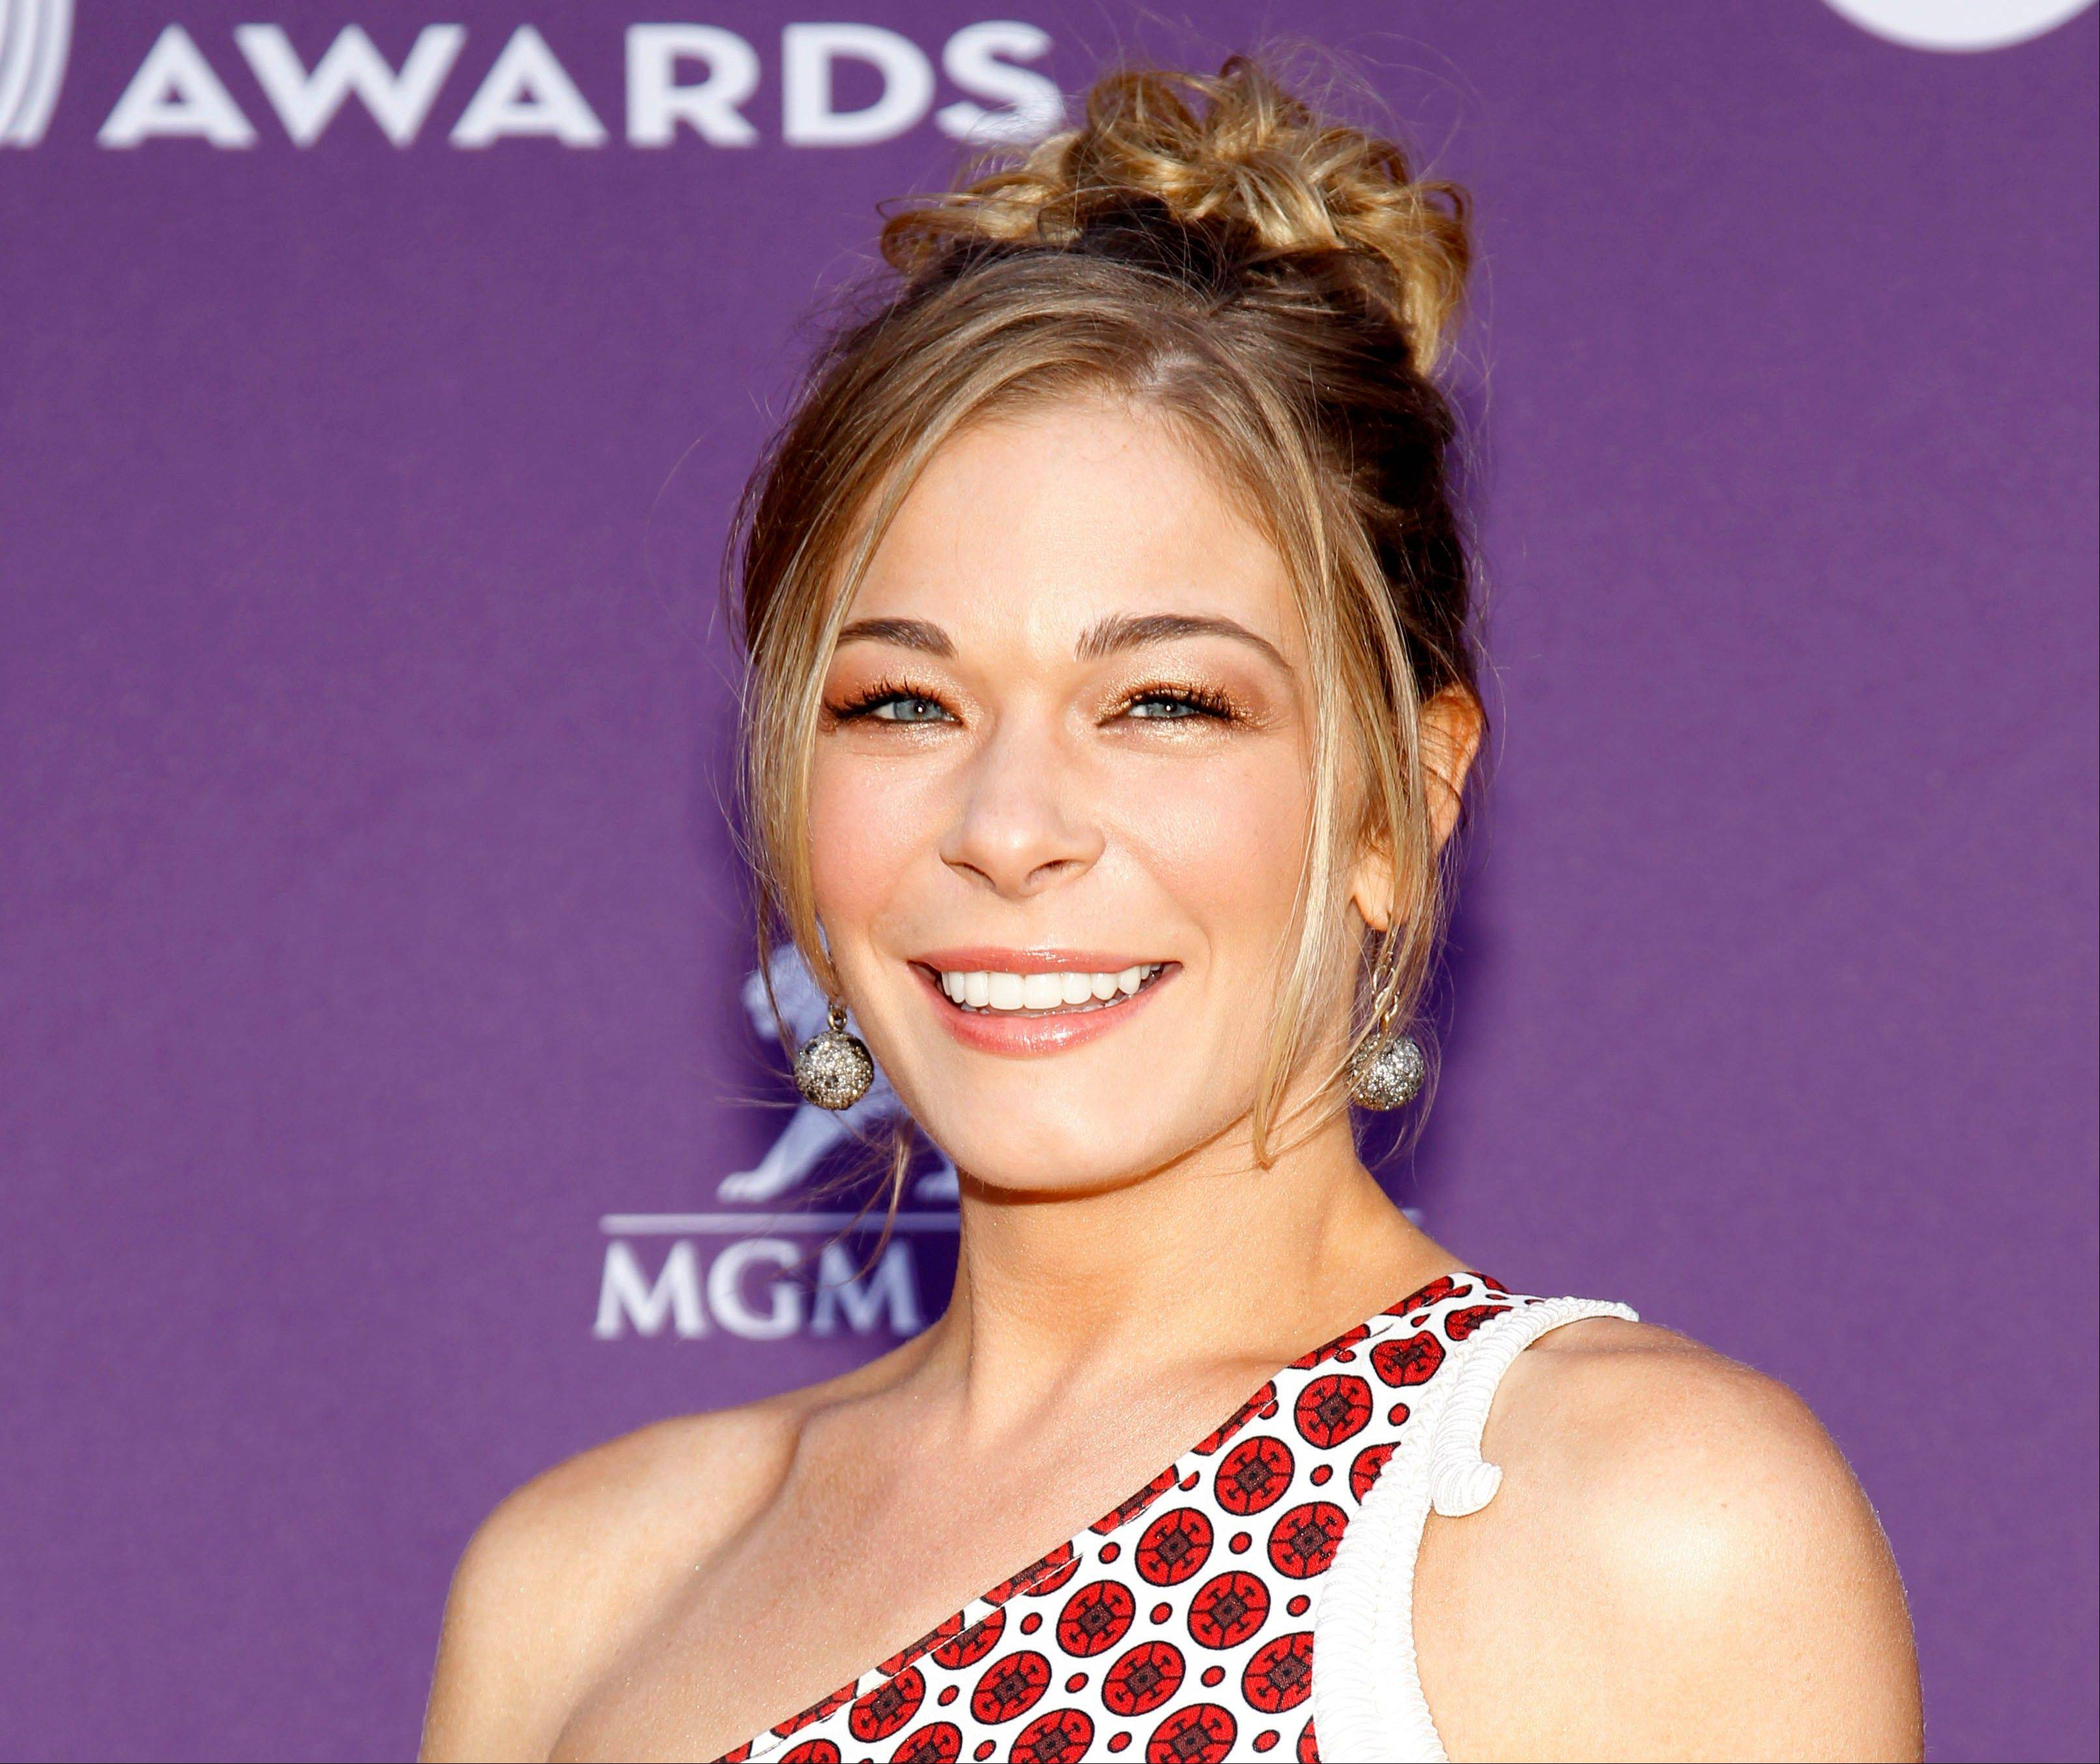 LeAnn Rimes has voluntarily entered a 30-day in-patient treatment facility to get professional help for anxiety and stress.